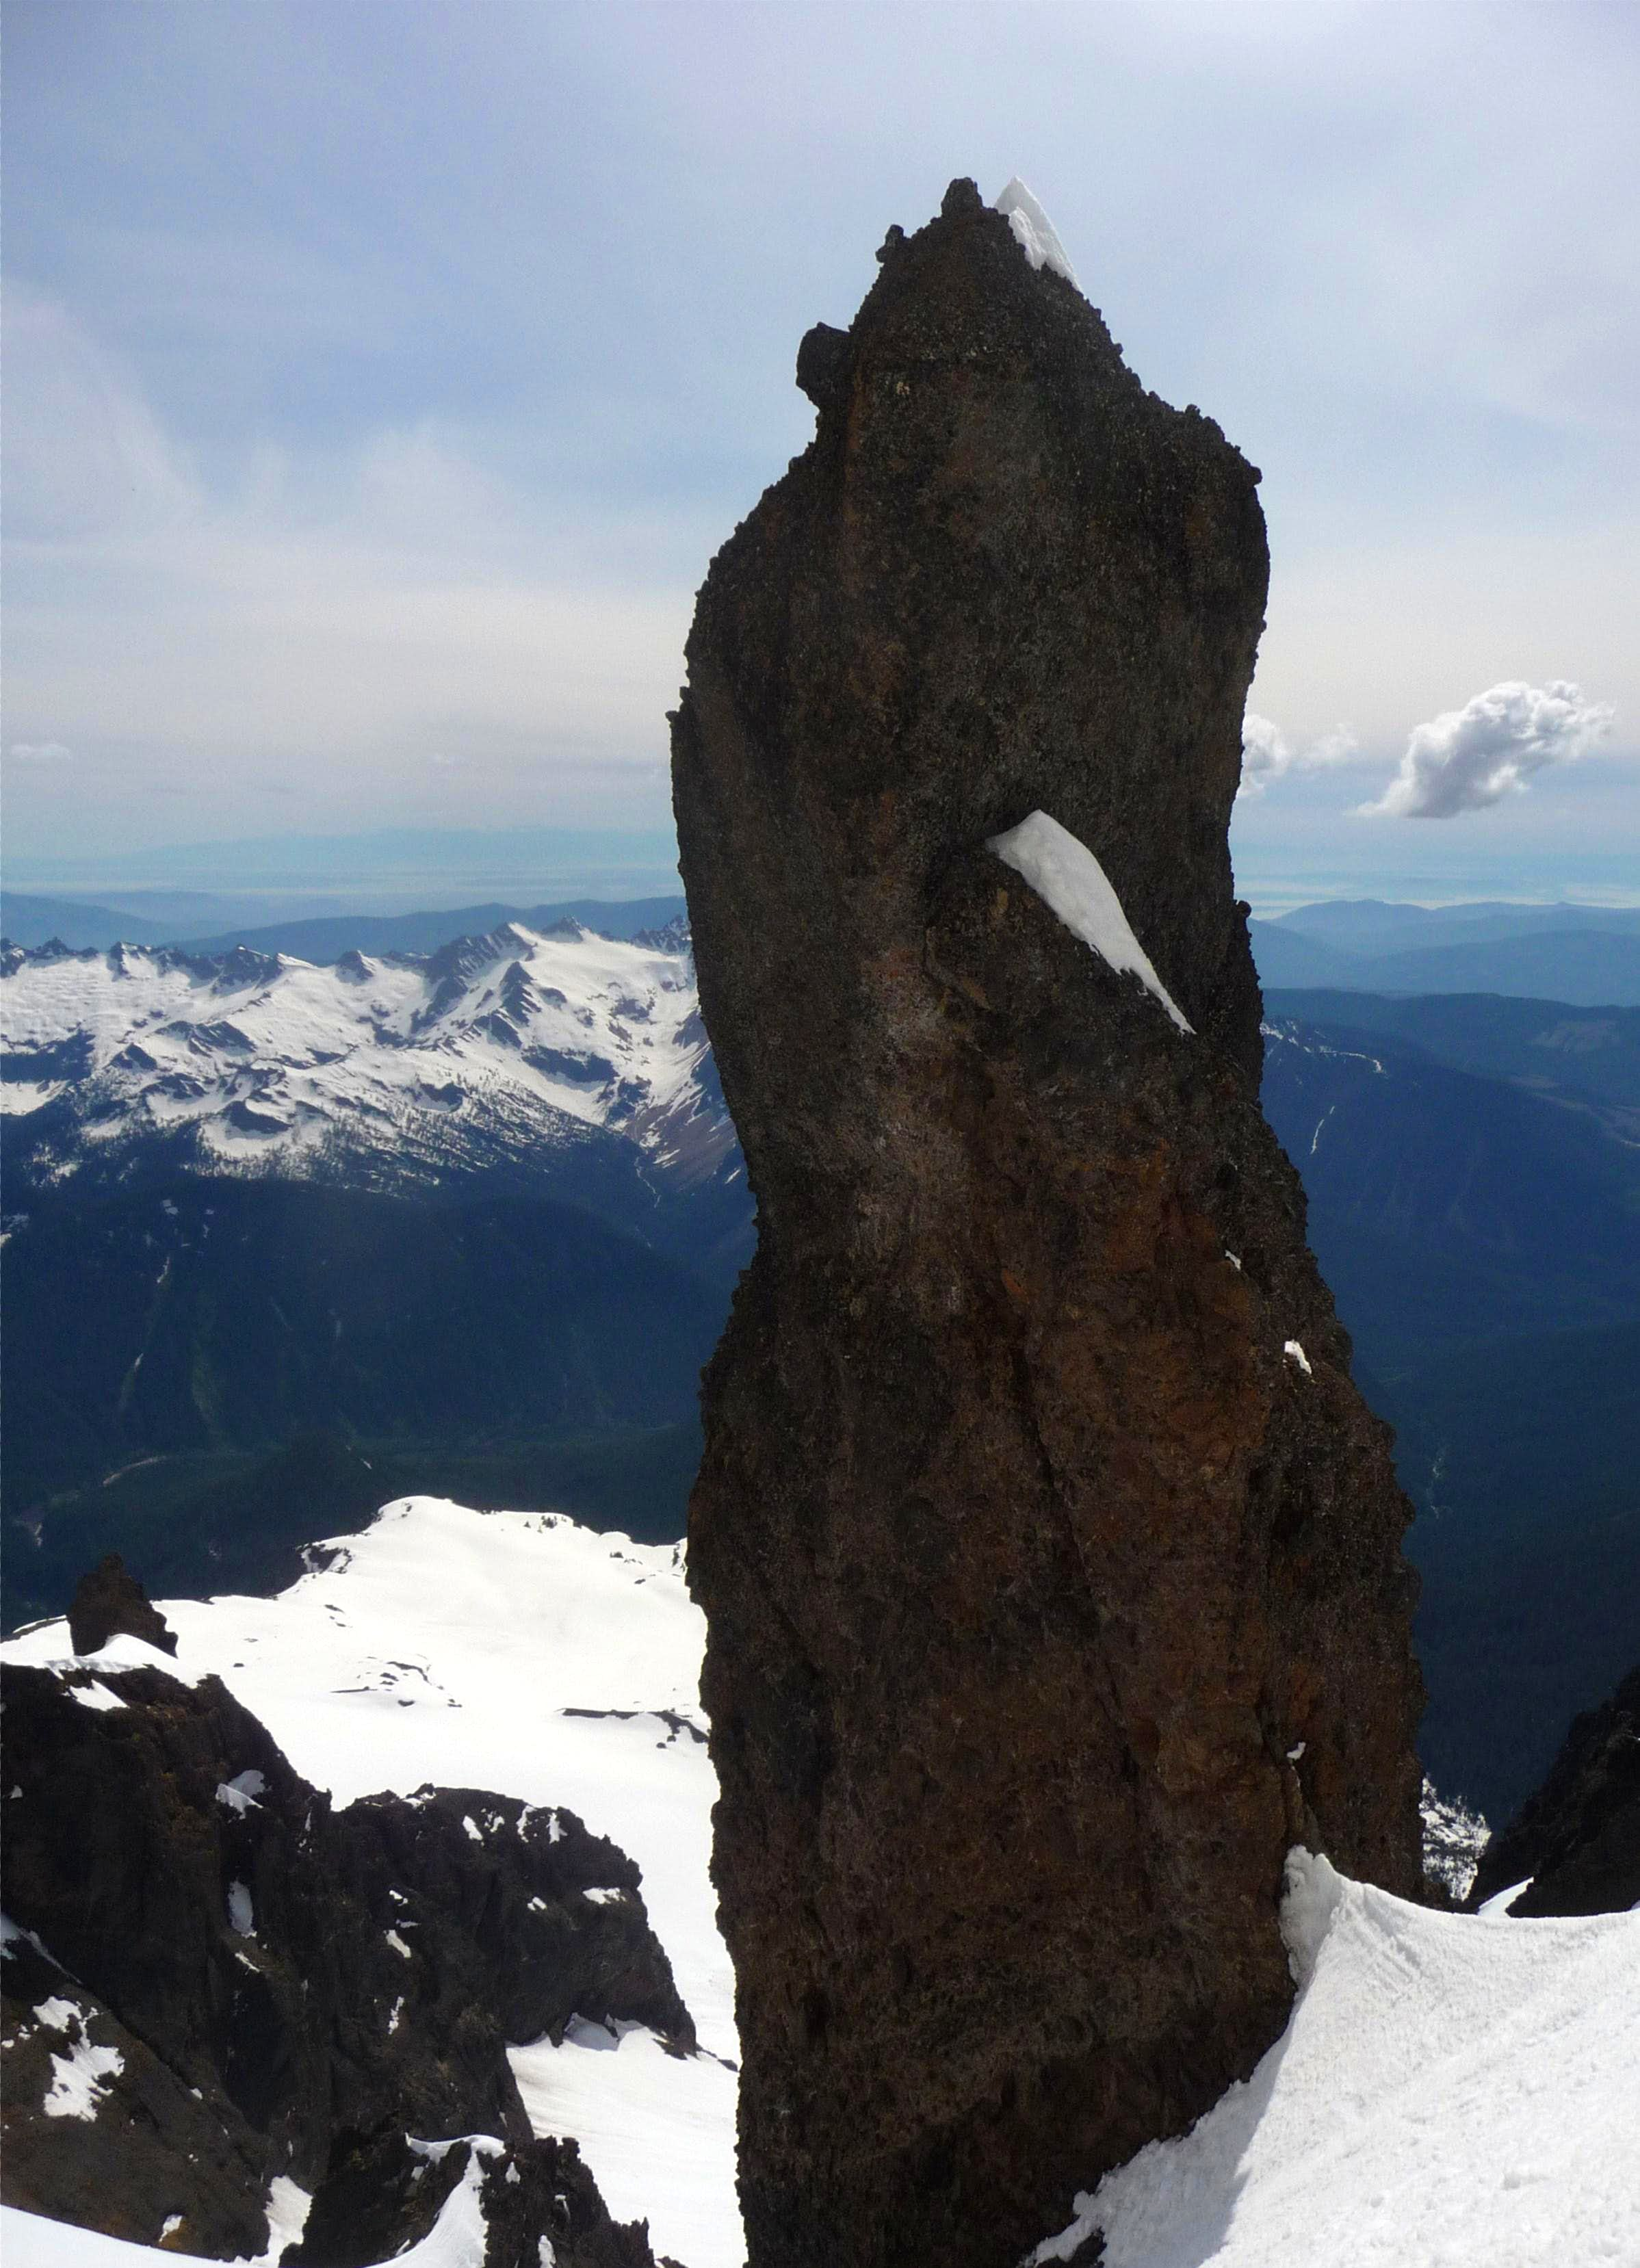 In Darkest Nooksack: An Ascent of Lincoln Peak